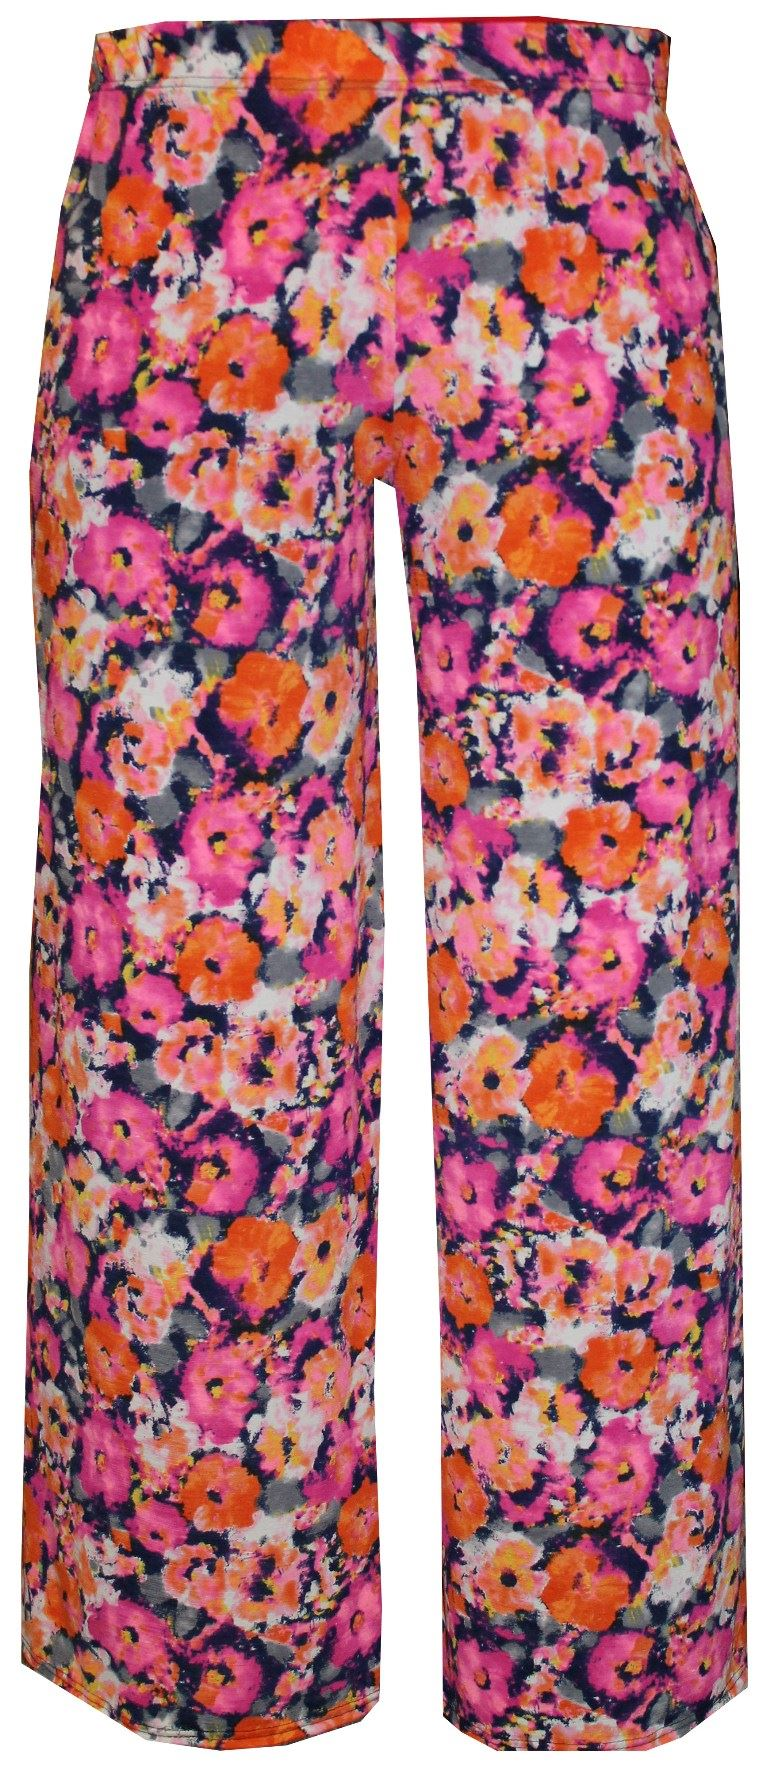 Find great deals on eBay for ladies palazzo pants. Shop with confidence.